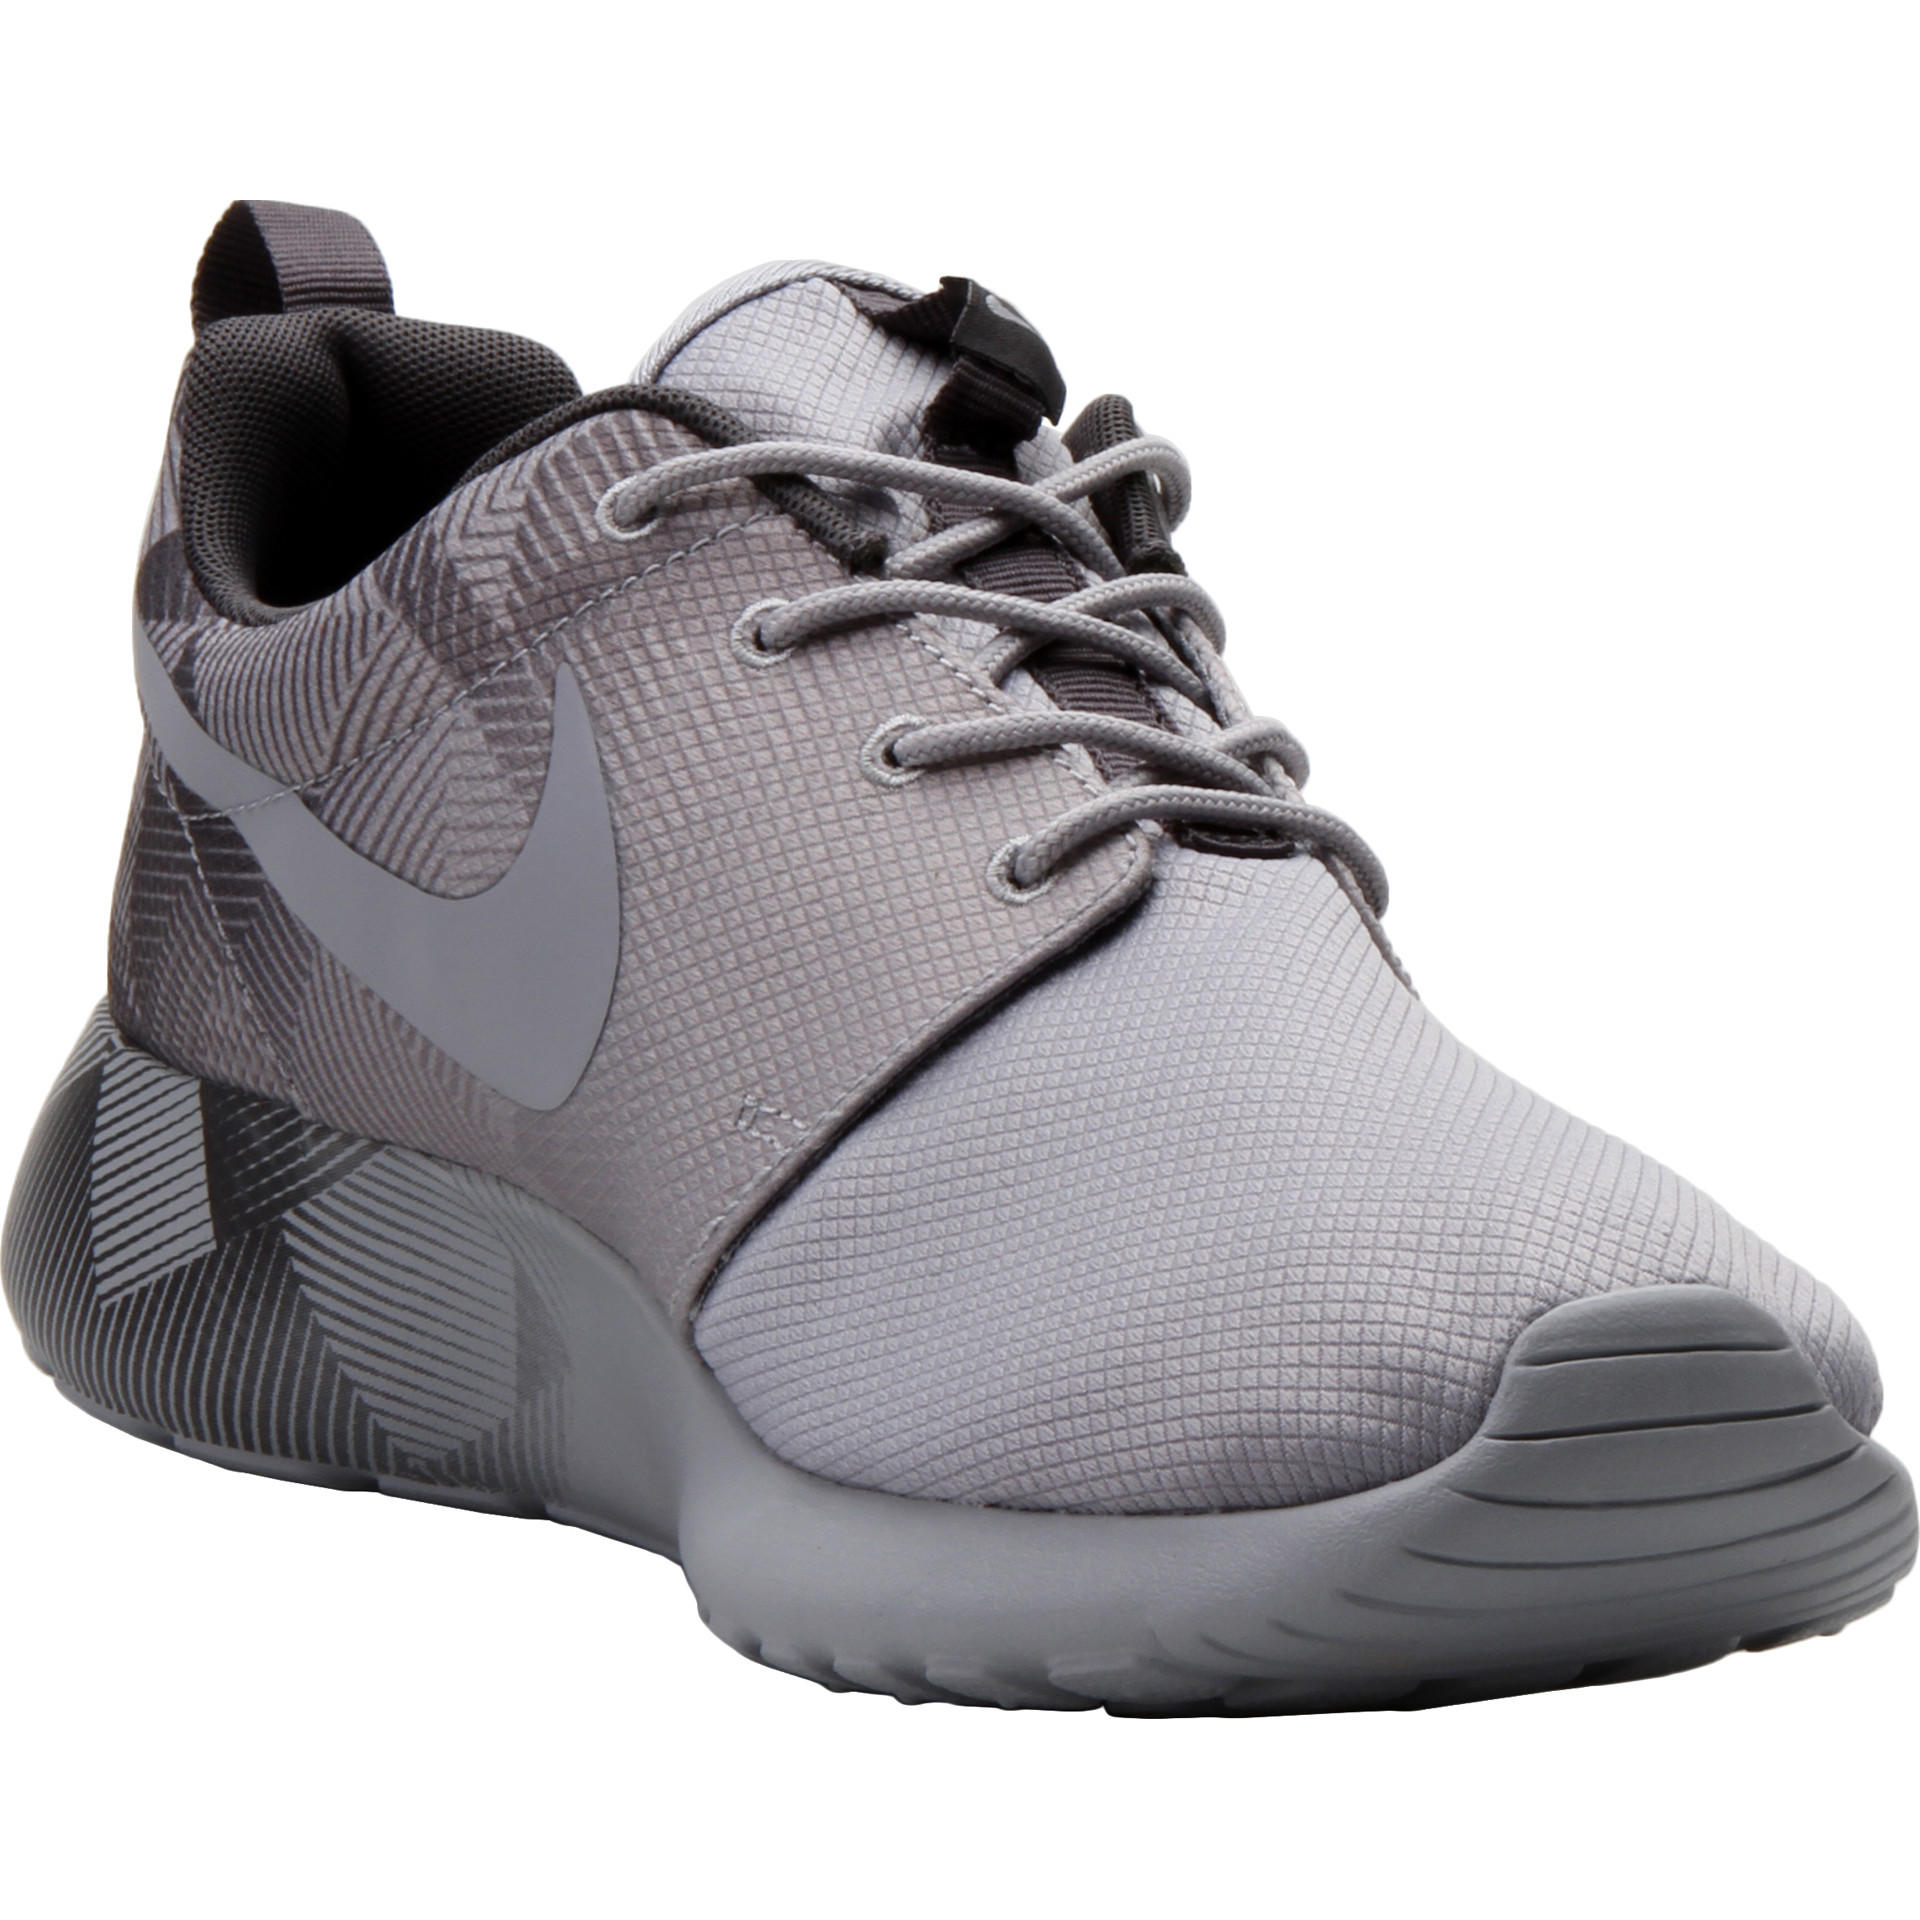 Nike Roshe One Print - Wolf Grey Wolf from NICE KICKS  d8cf13199d4d